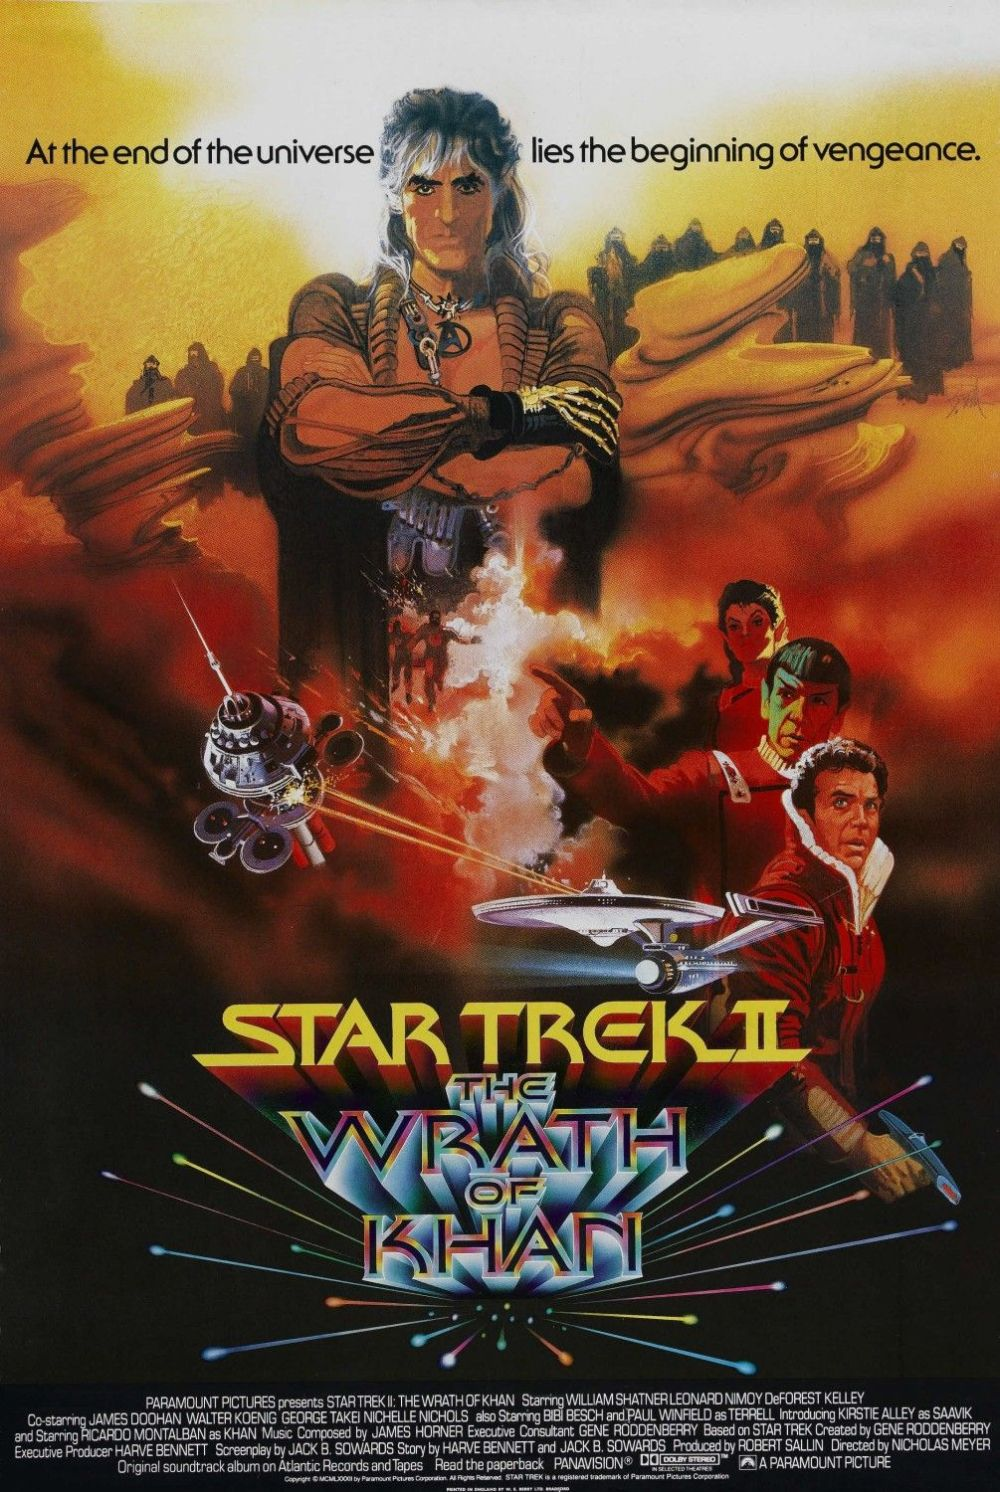 Star Trek II movie poster